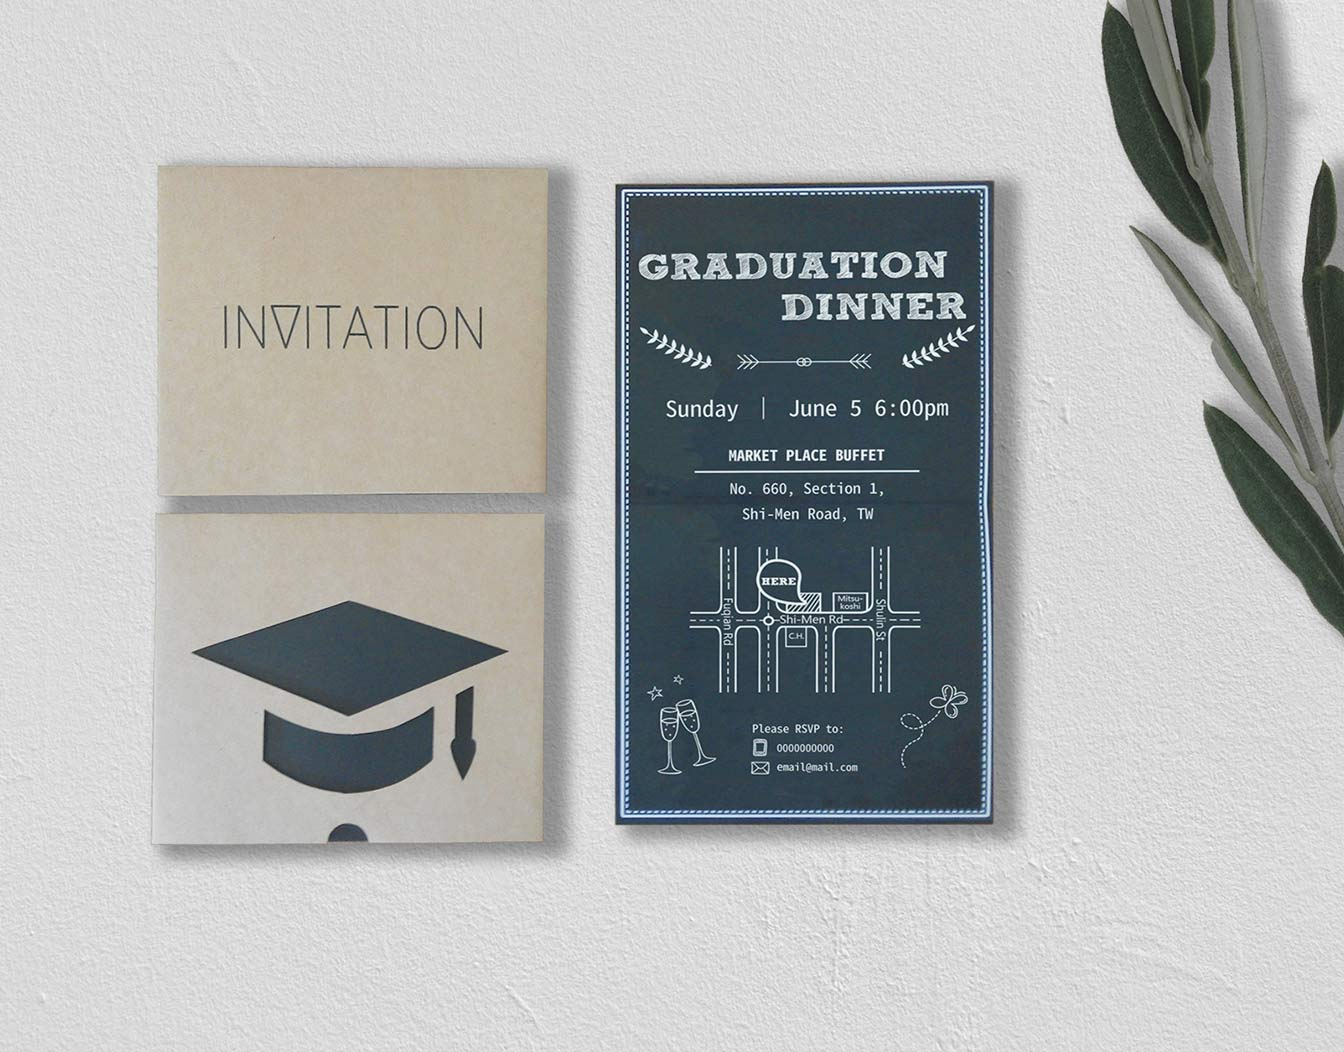 Set of graduation invitation cards